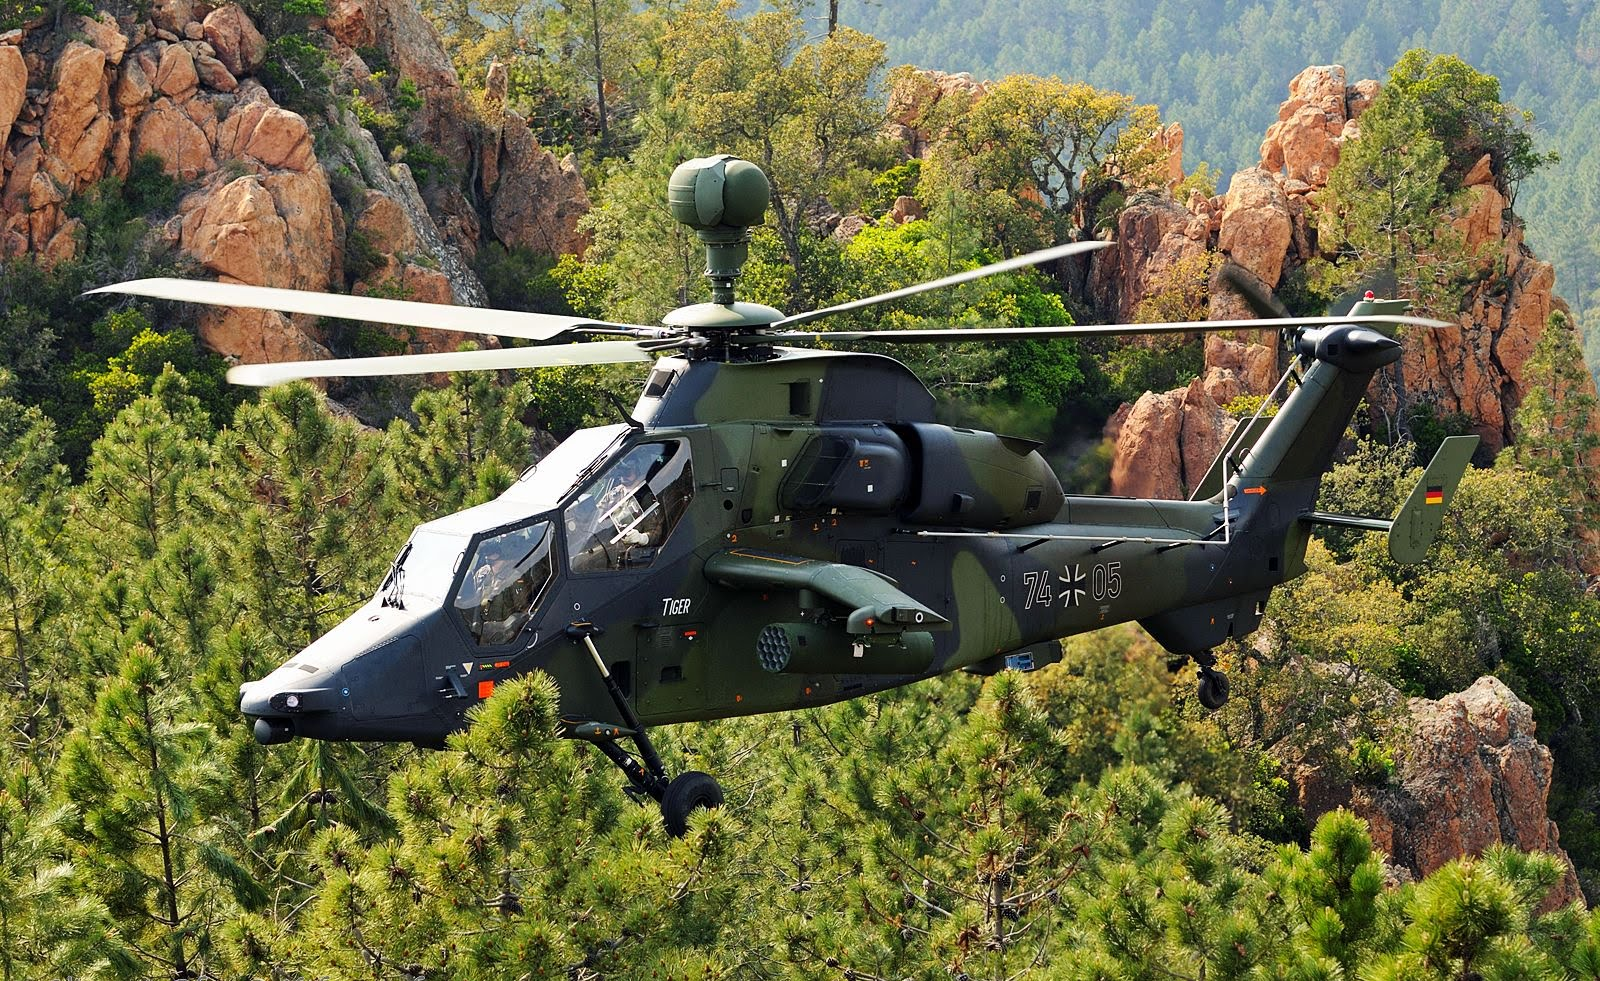 tiger armed reconnaissance helicopter with Military Helicopters on I M Looking Forward Meeting S Beautiful Prince Harry Gushes New Niece Thanks Australians Gracious Hosts Bundle Gifts Home Baby Charlotte also File Australian Army ARH Tiger nose detail moreover Some More Great Photos Of Australian further Army Special Forces Missions And History as well Fsx Afs Design Eurocopter Ec 505 Tiger 973 The Dawg.